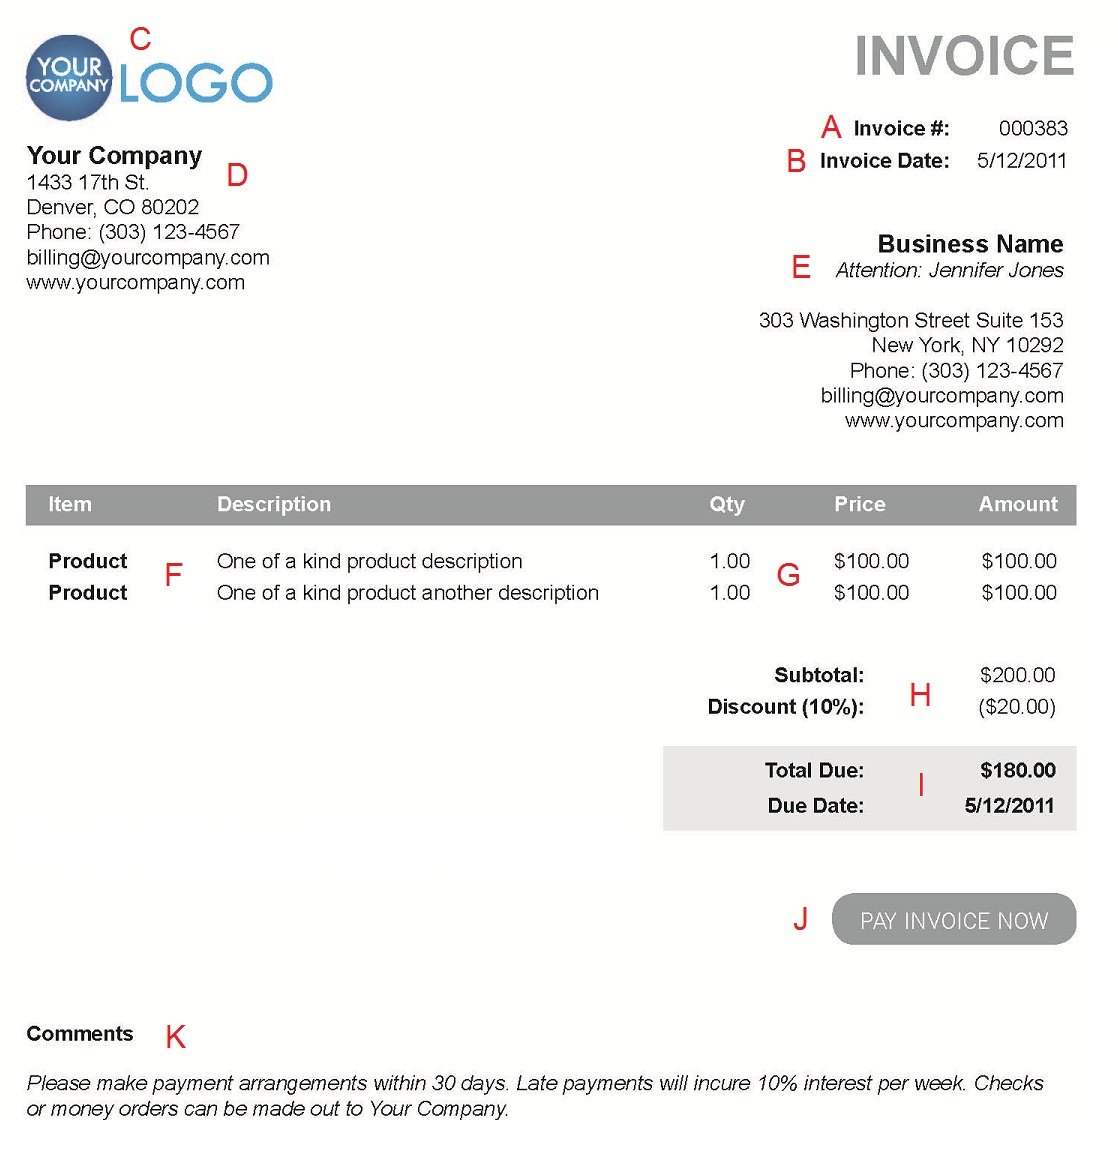 Ultrablogus  Nice The  Different Sections Of An Electronic Payment Invoice With Foxy A  With Cute Invoice Maker Software Also View Invoice In Addition Quickbooks Online Invoicing And Paypal Invoice Template As Well As Freelance Writer Invoice Template Additionally Editable Invoice From Paysimplecom With Ultrablogus  Foxy The  Different Sections Of An Electronic Payment Invoice With Cute A  And Nice Invoice Maker Software Also View Invoice In Addition Quickbooks Online Invoicing From Paysimplecom